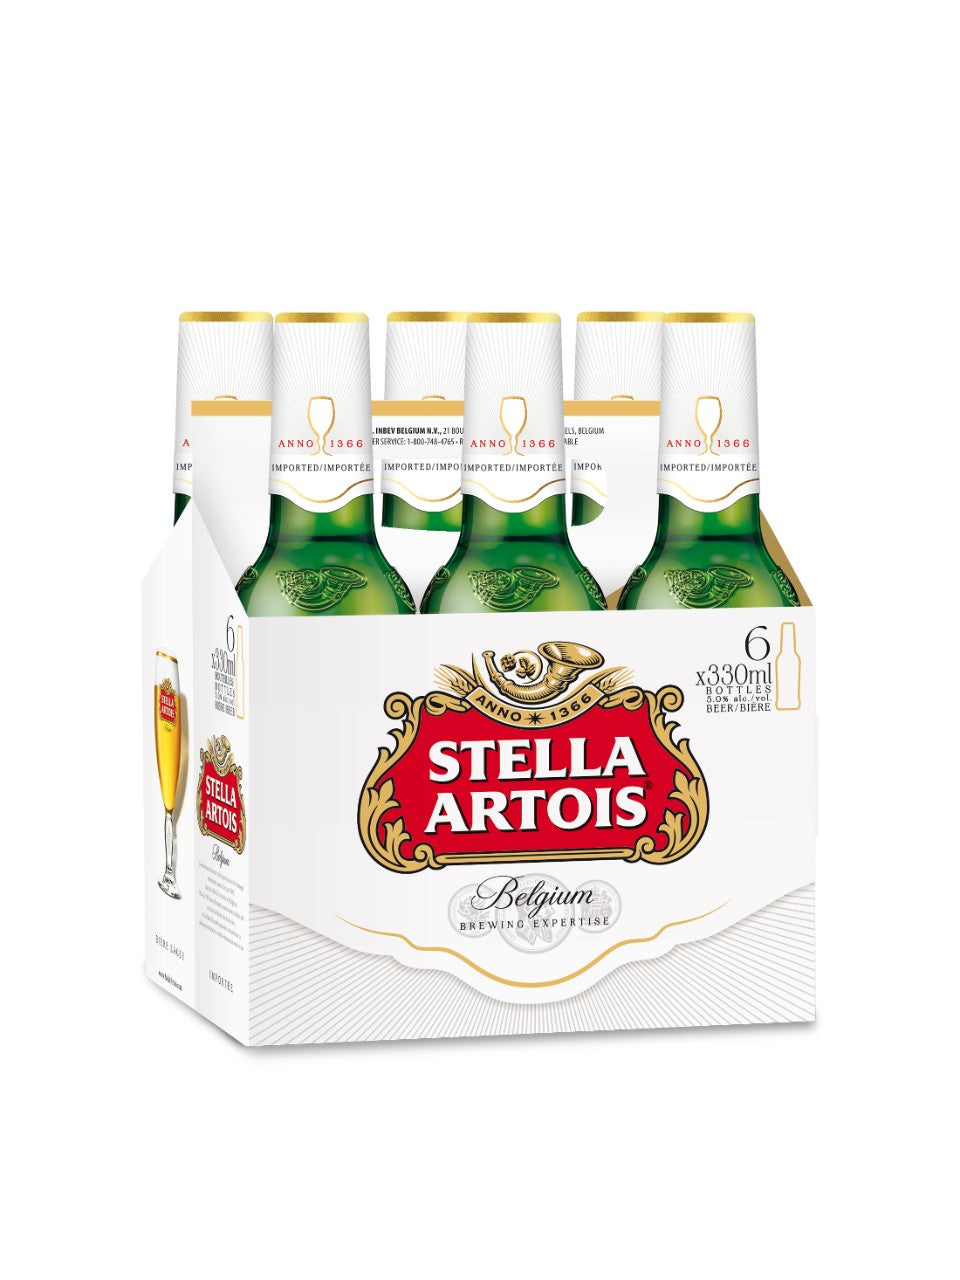 Stella Artois bottle 6x330mL